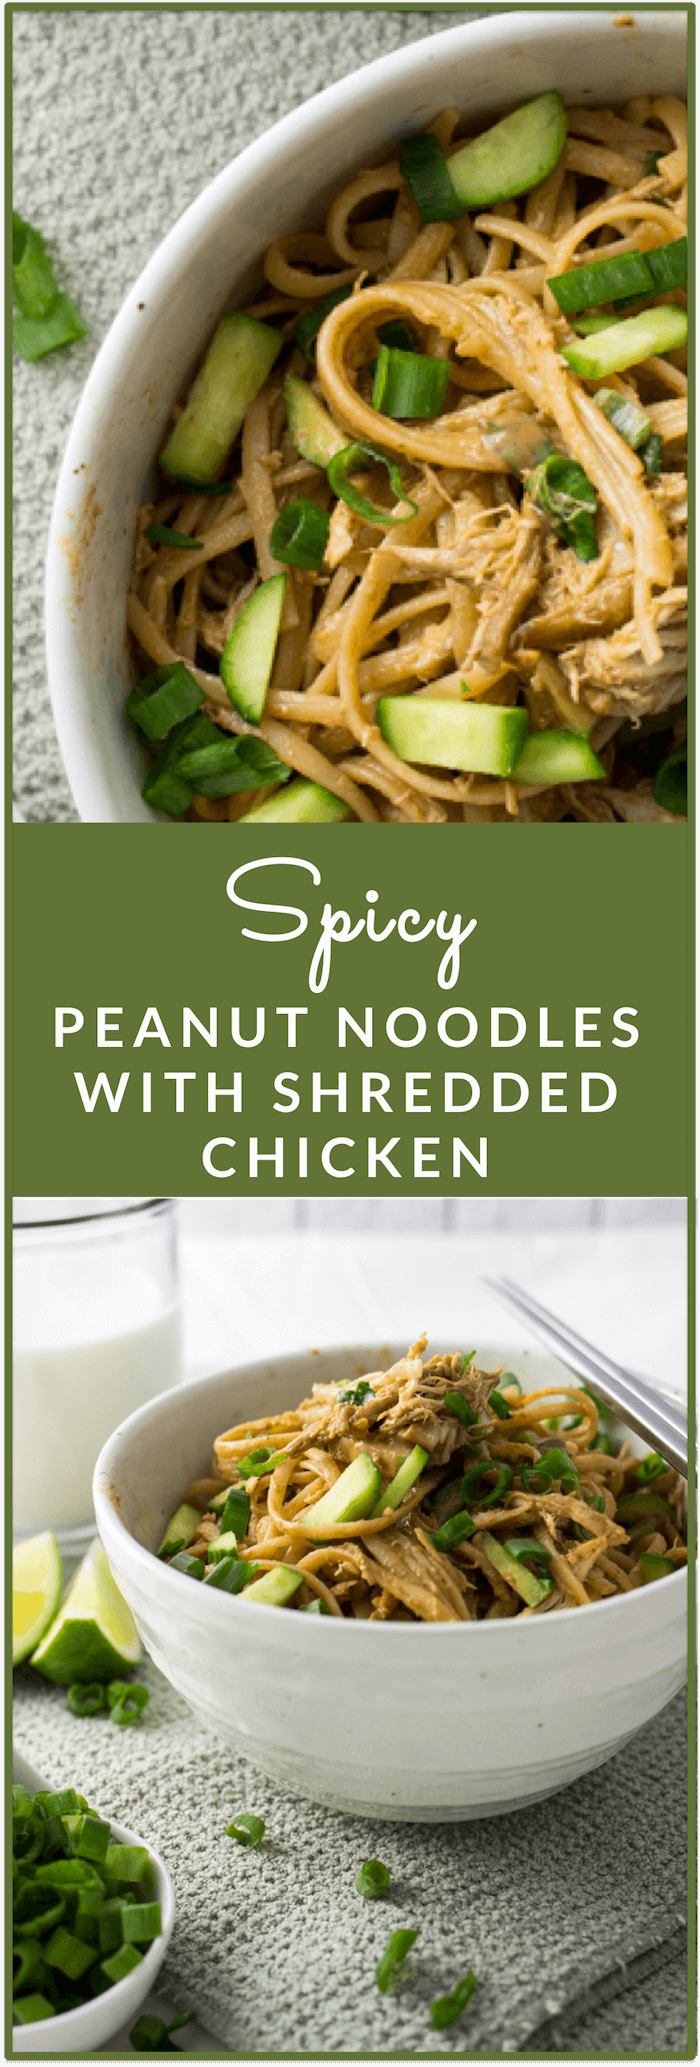 These spicy peanut noodles are perfect: thin noodles covered in a thick peanut sauce with shredded chicken. It's nicely complemented by finely chopped scallions and thin cucumber strips. There's also a hint of spiciness in the sauce, too!